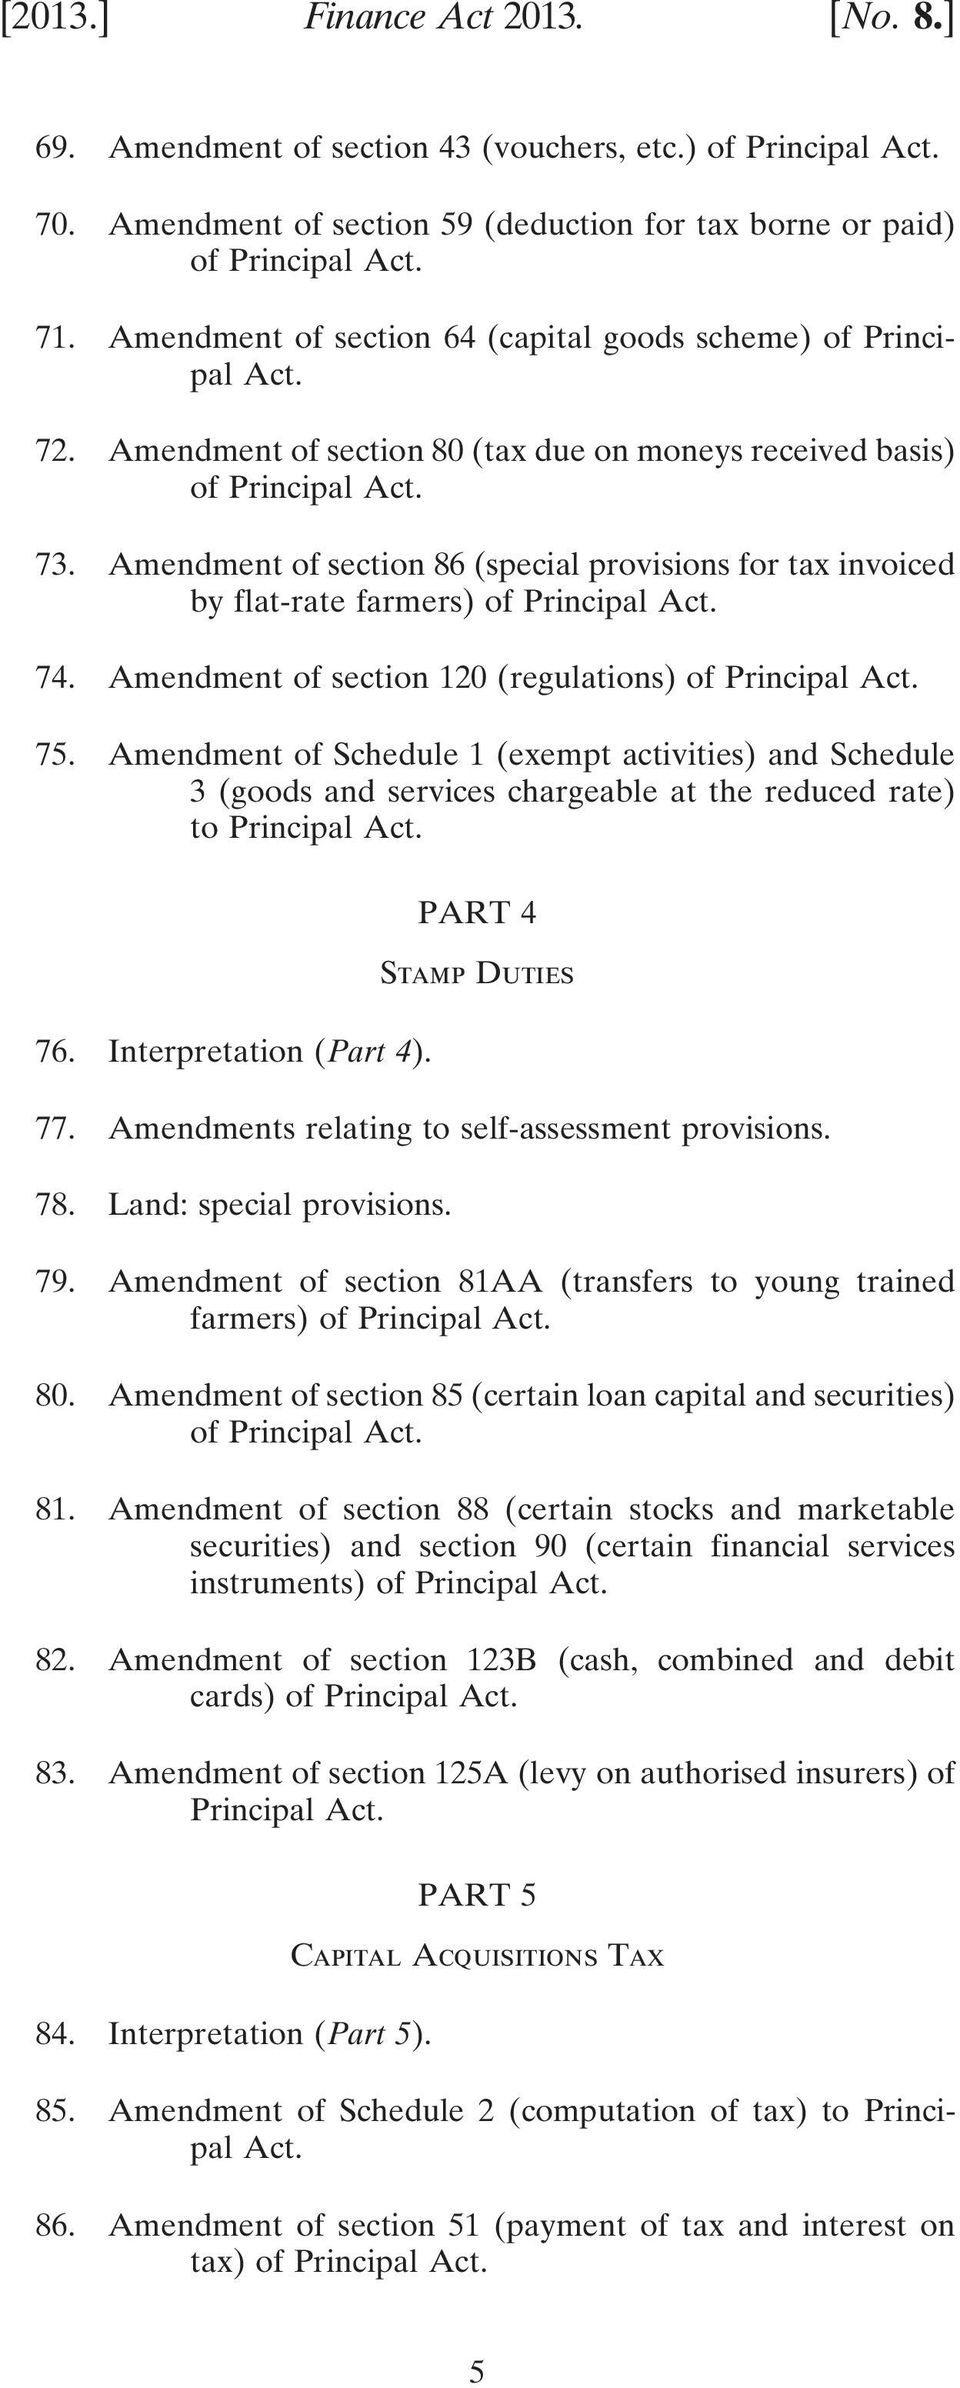 Amendment of section 86 (special provisions for tax invoiced by flat-rate farmers) of Principal Act. 74. Amendment of section 120 (regulations) of Principal Act. 75.